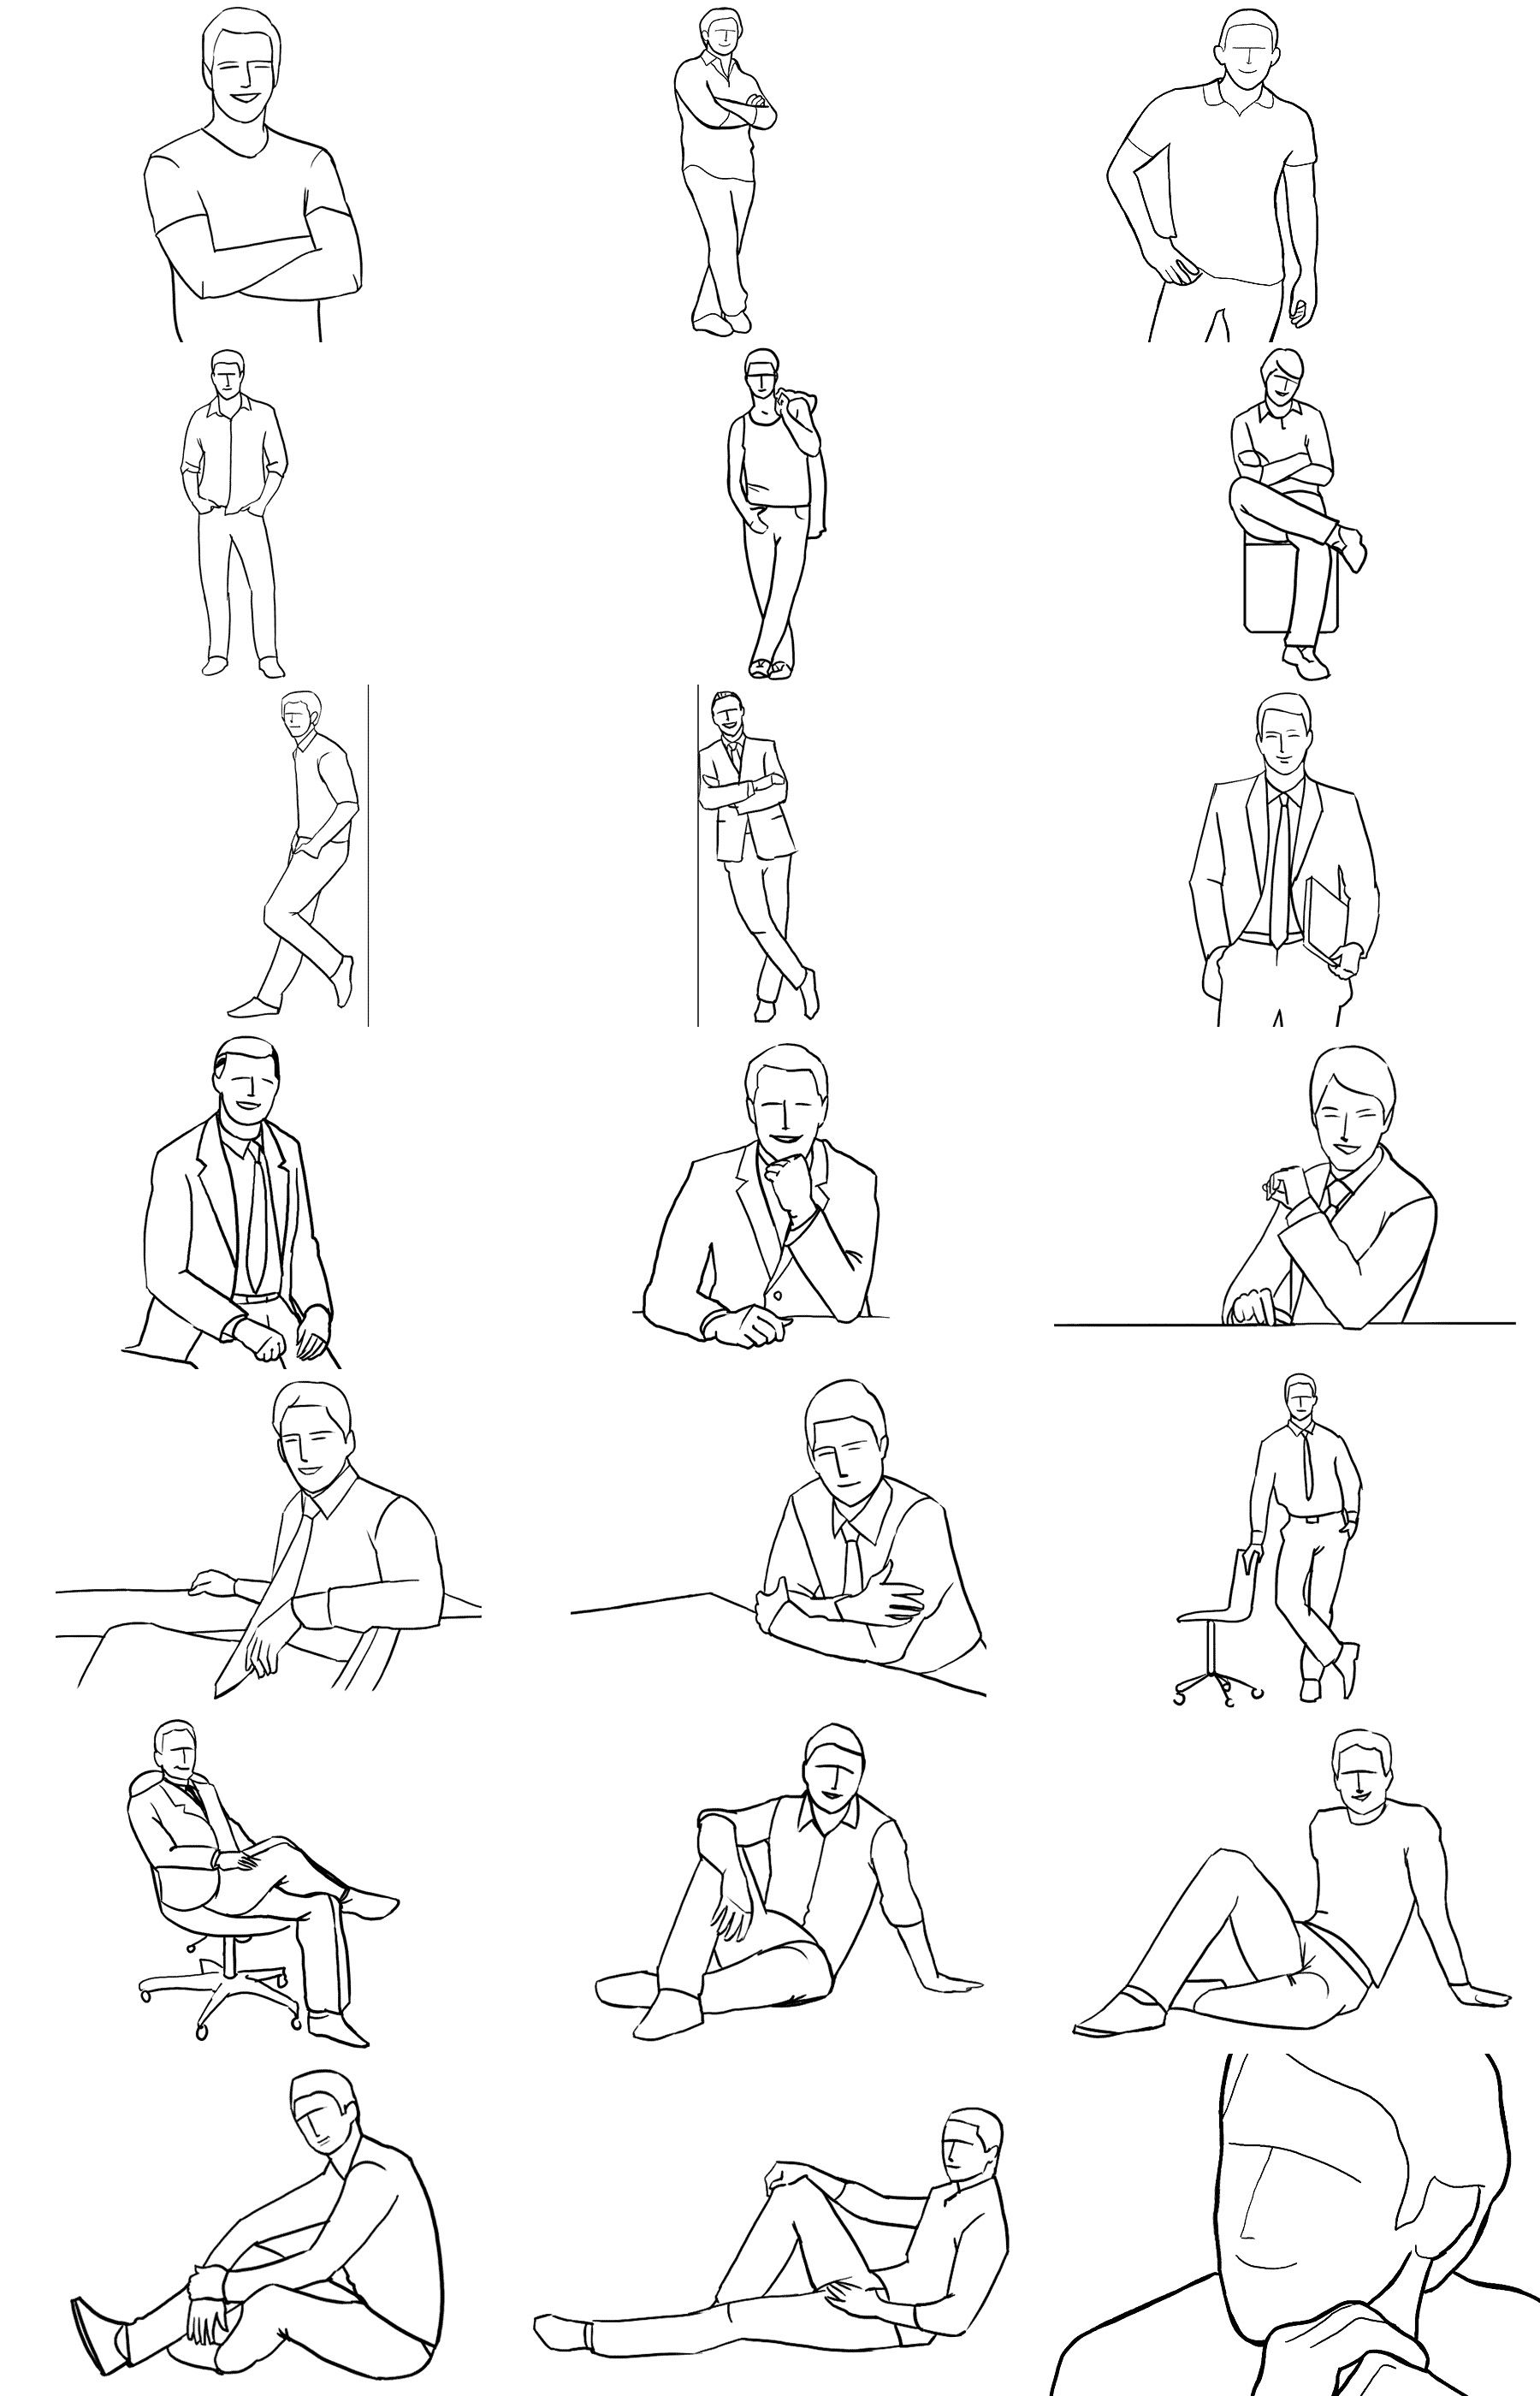 Posing Guide Sample Poses To Get You Started With Photographing Men